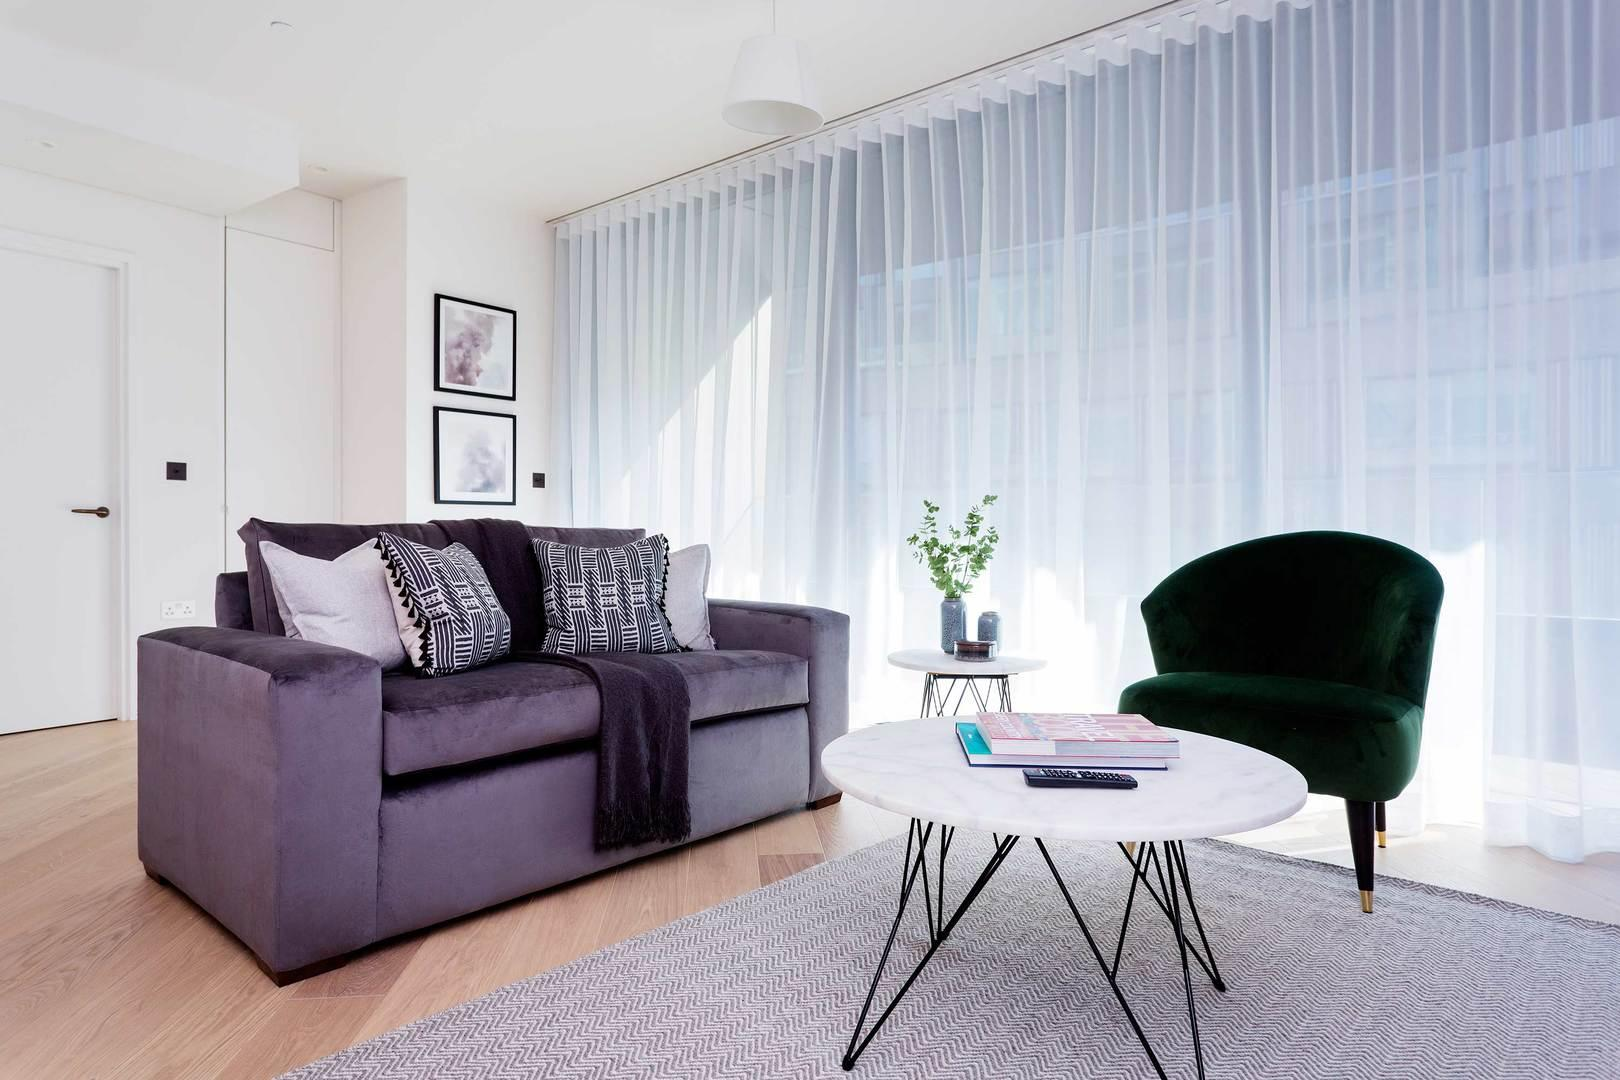 Property Image 1 - Attractive Shepherd's Bush Apartment in Iconic Building